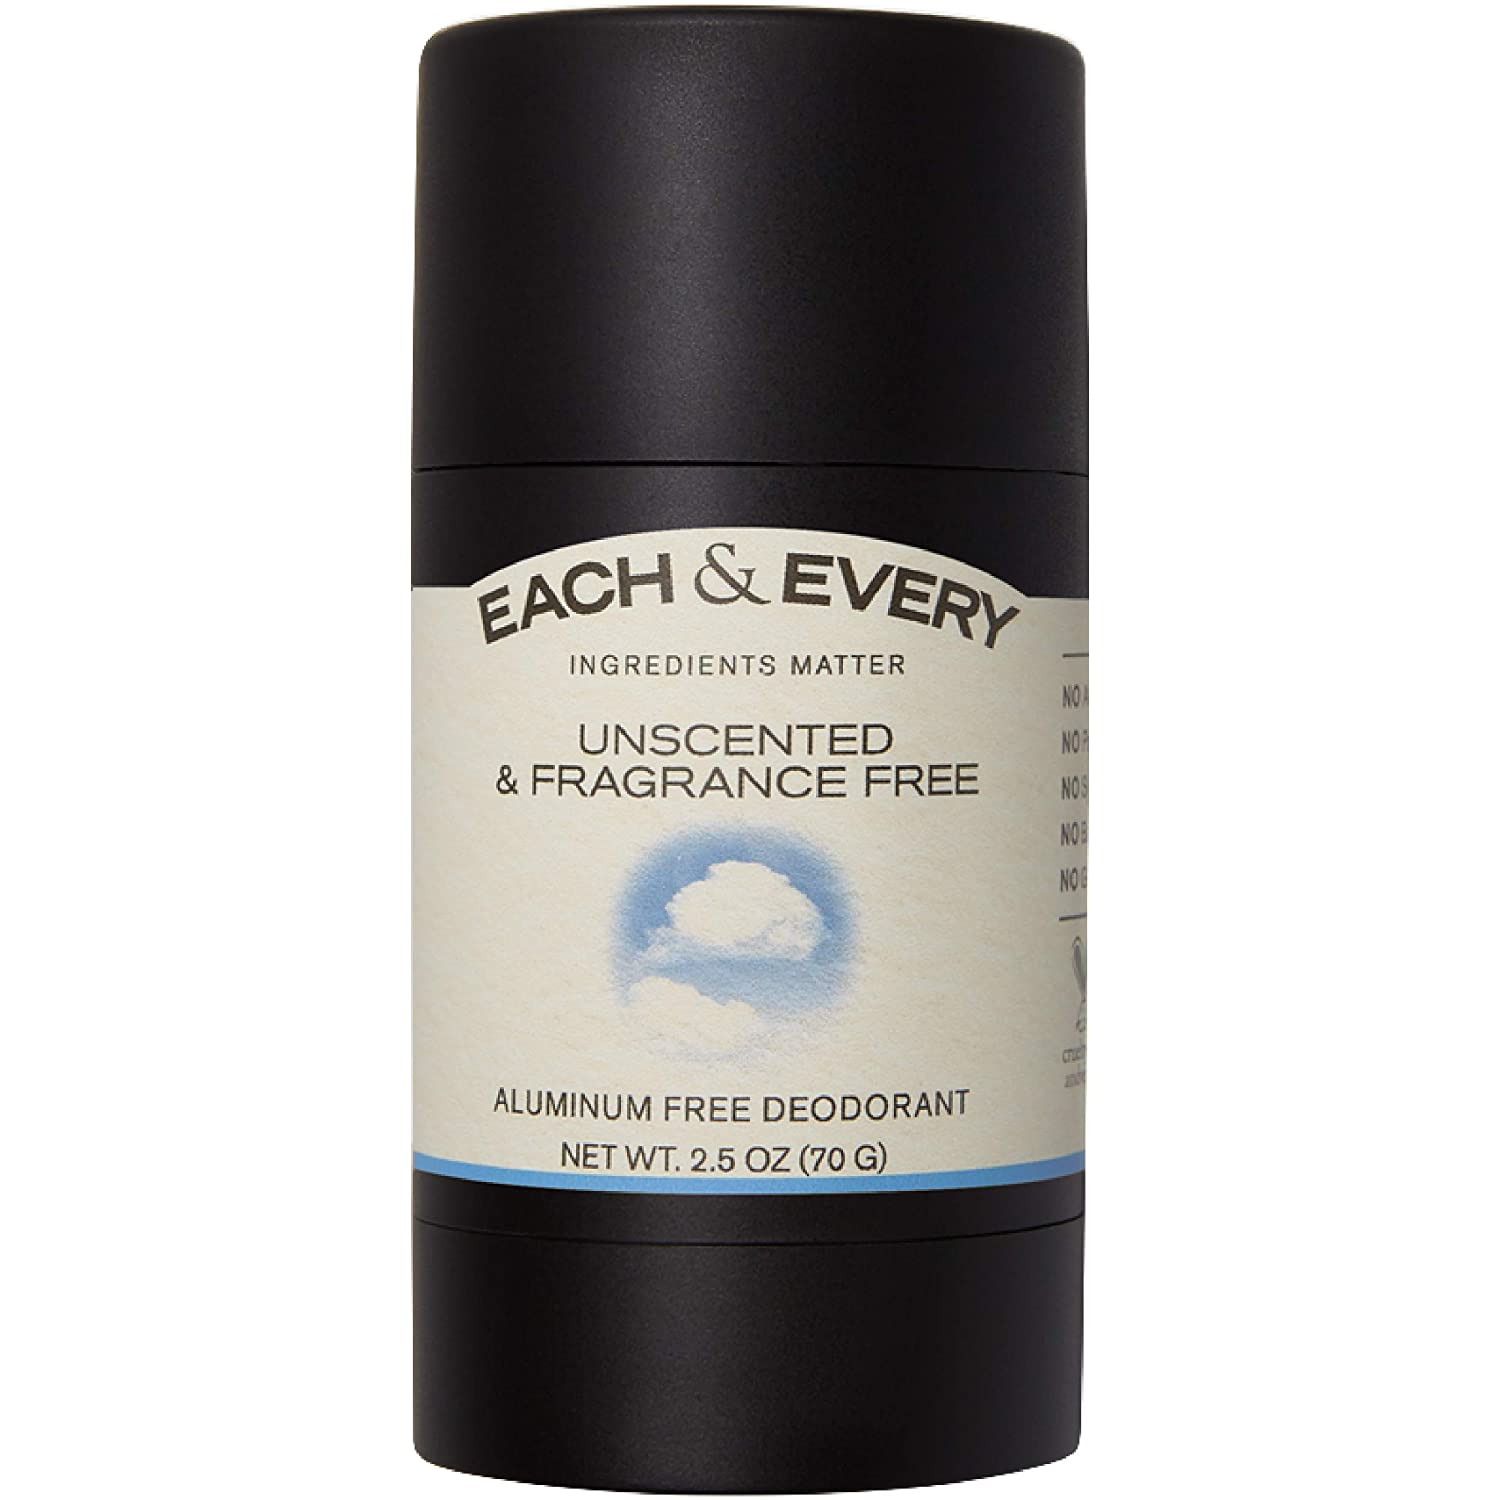 Each & Every All Natural Aluminum Free Unscented Deodorant for Women and Men, Cruelty Free Vegan Deodorant with Essential Oils, Non-Toxic, Paraben Free, Fragrance Free, 2.5 Oz.